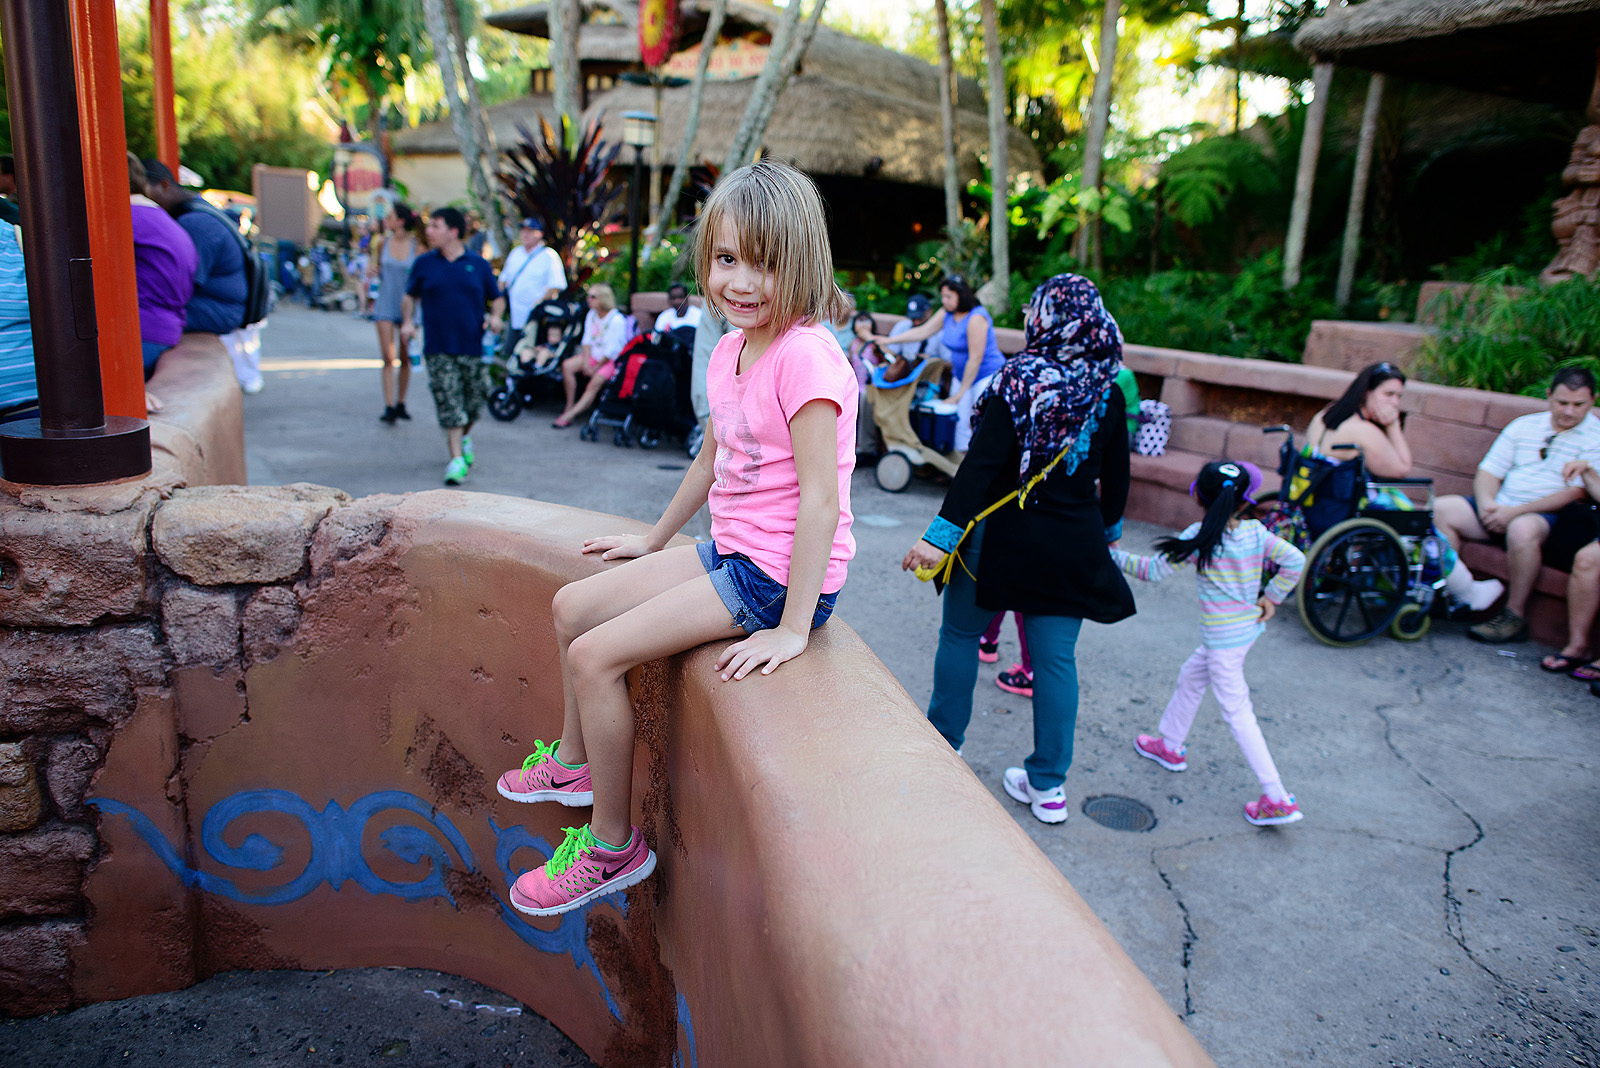 girl waiting in line for ride at disney world